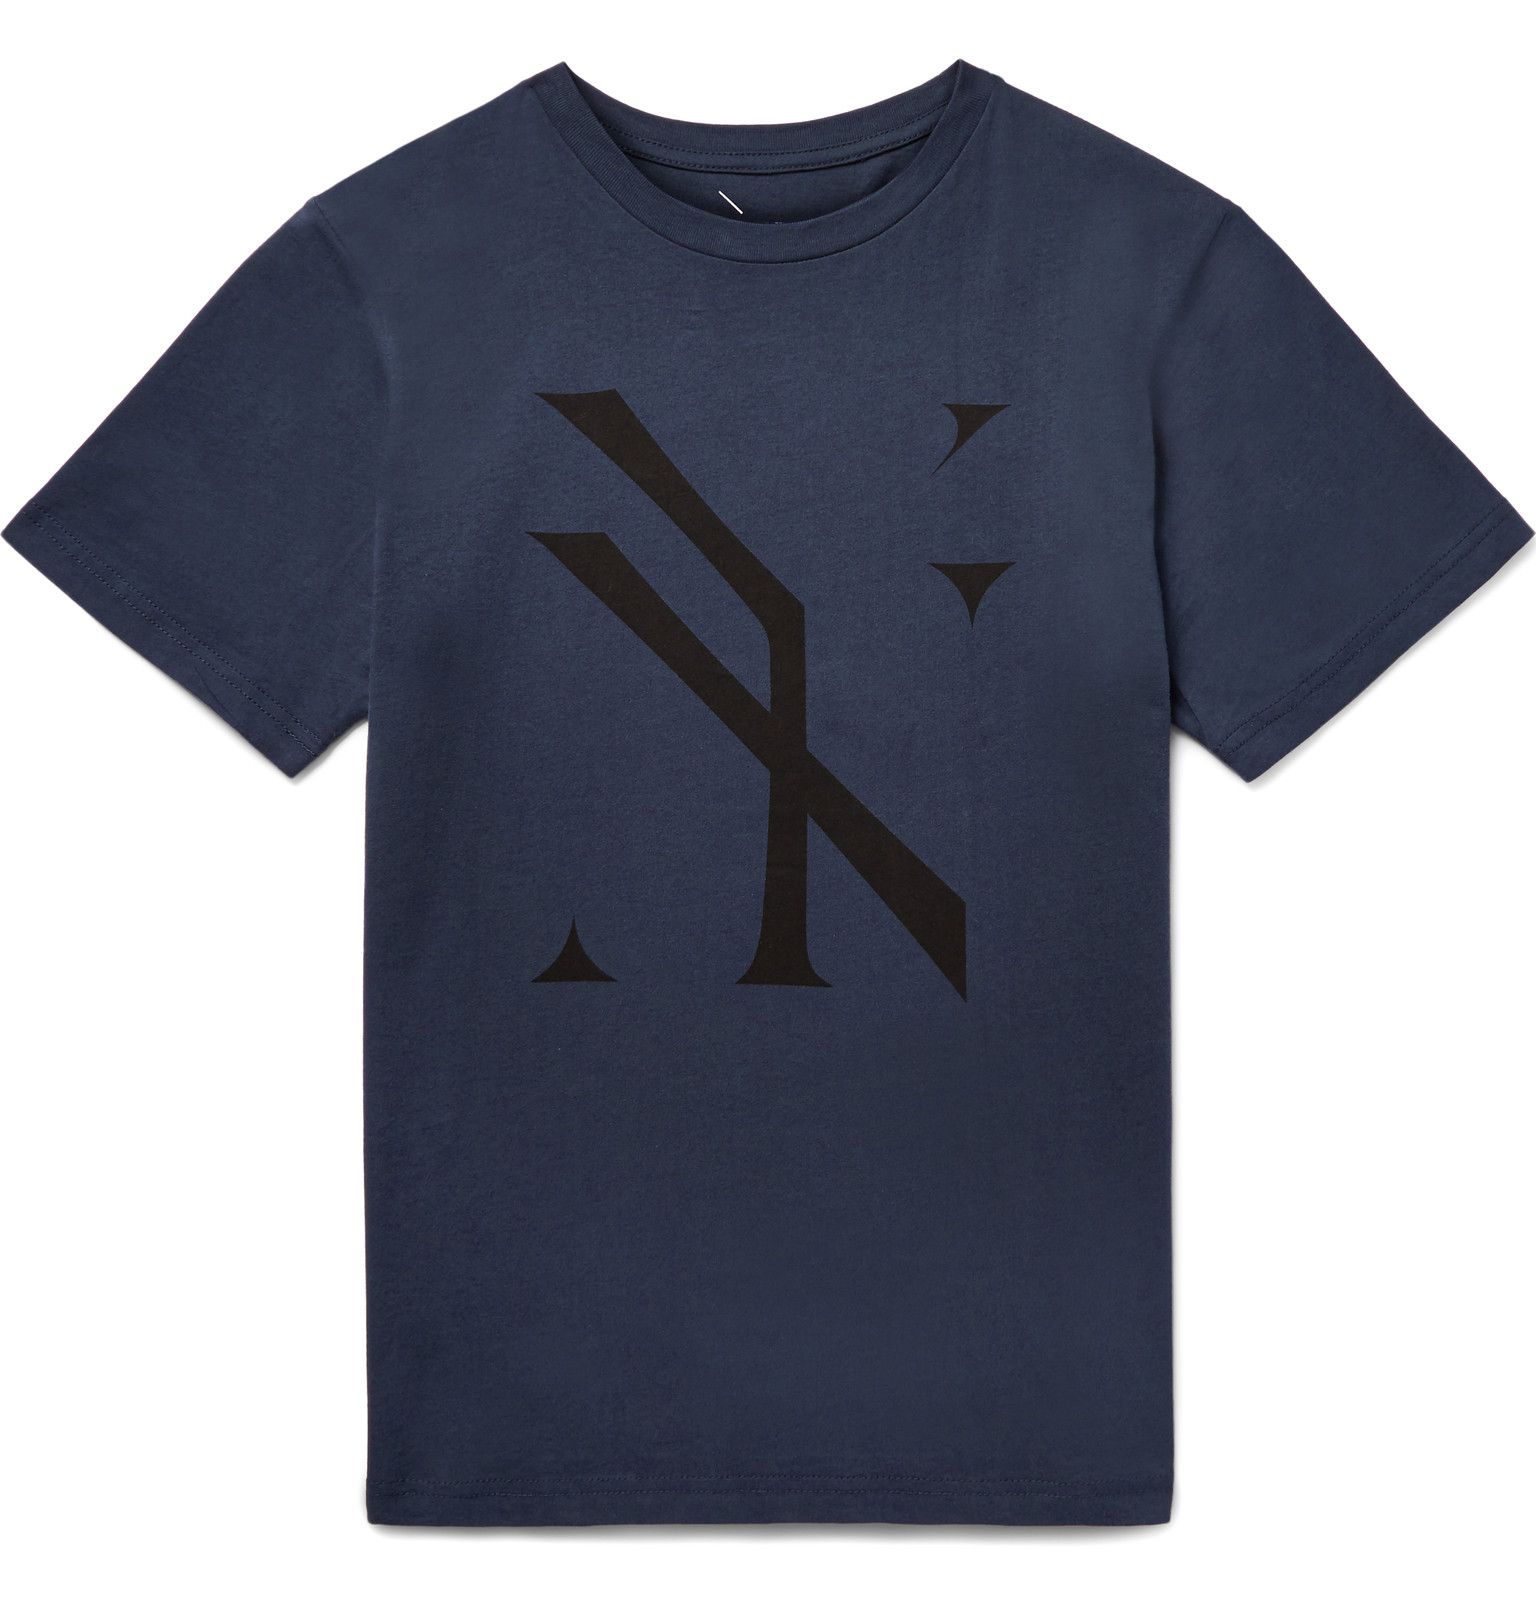 <a href='http://www.mrporter.com/en-us/mens/designers/Saturdays_NYC'>Saturdays NYC</a> specialises in logo-print T-shirts, issuing a bevy of new designs each season. This storm-blue cotton-jersey piece is emblazoned with a 'blown out' motif that riffs on the effects of exposure in photography. Try yours layered under a plaid shirt with similar hues.